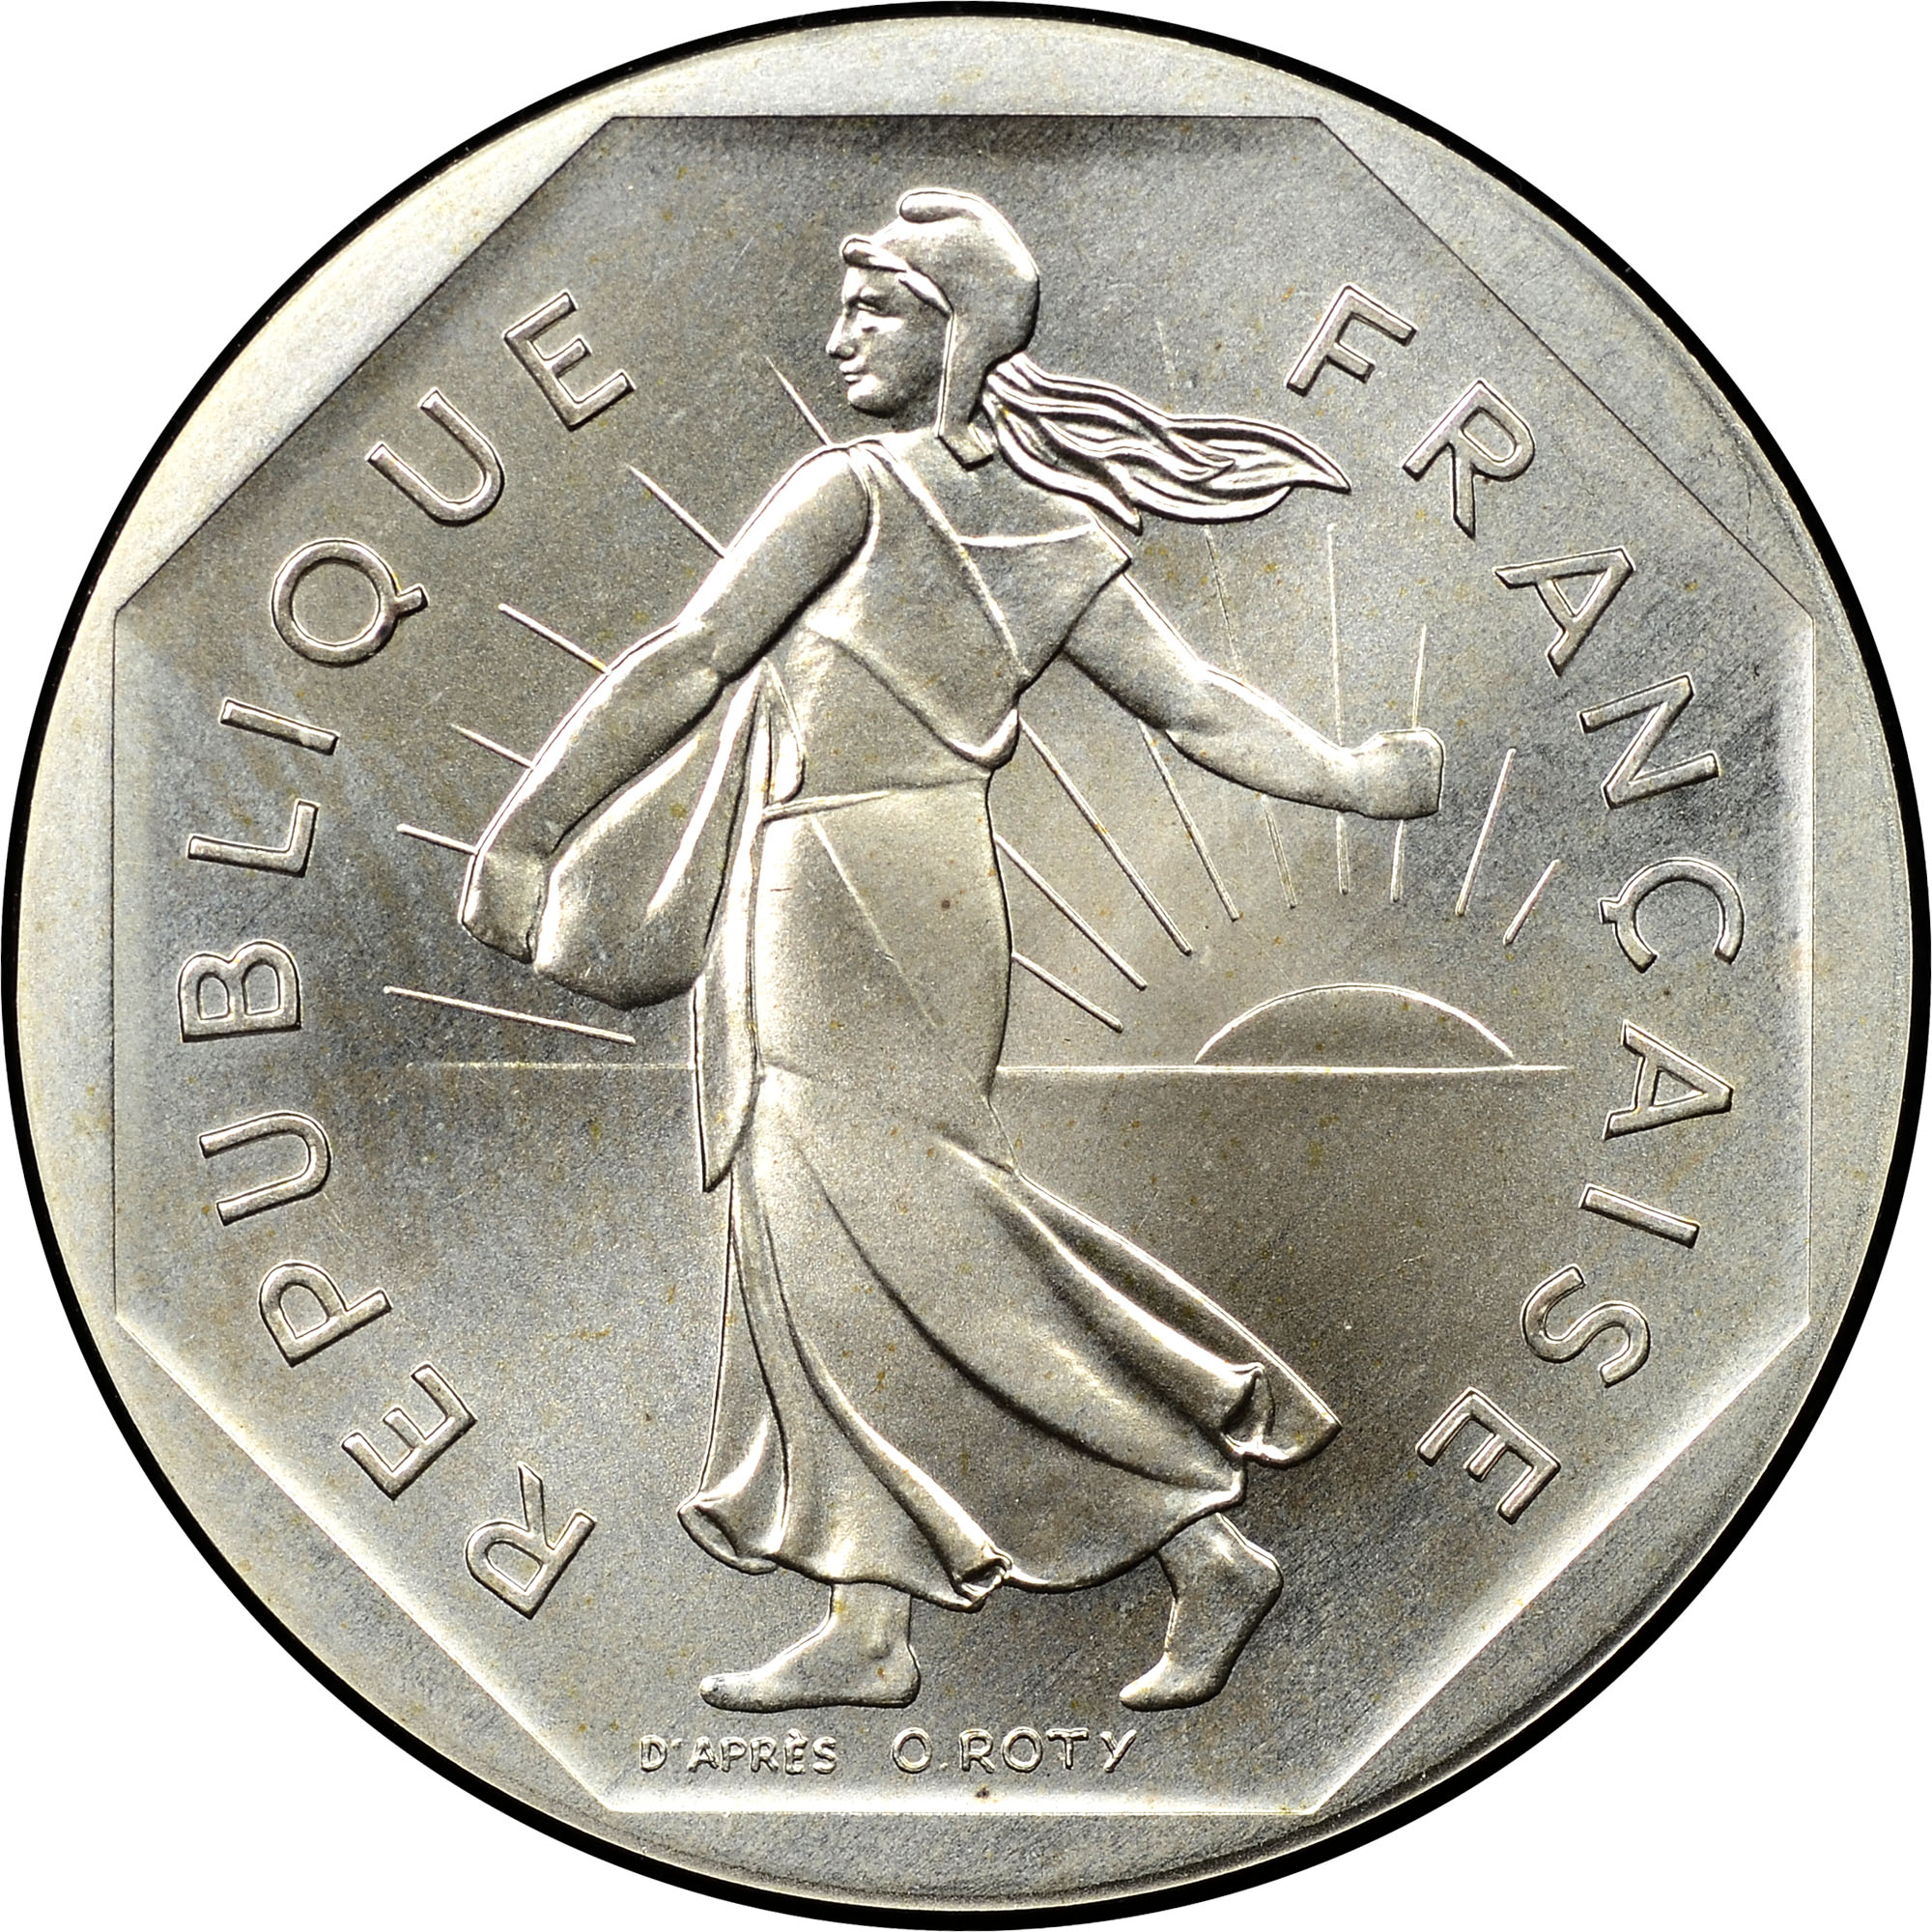 France 2 Francs KM 942 1 Prices & Values | NGC